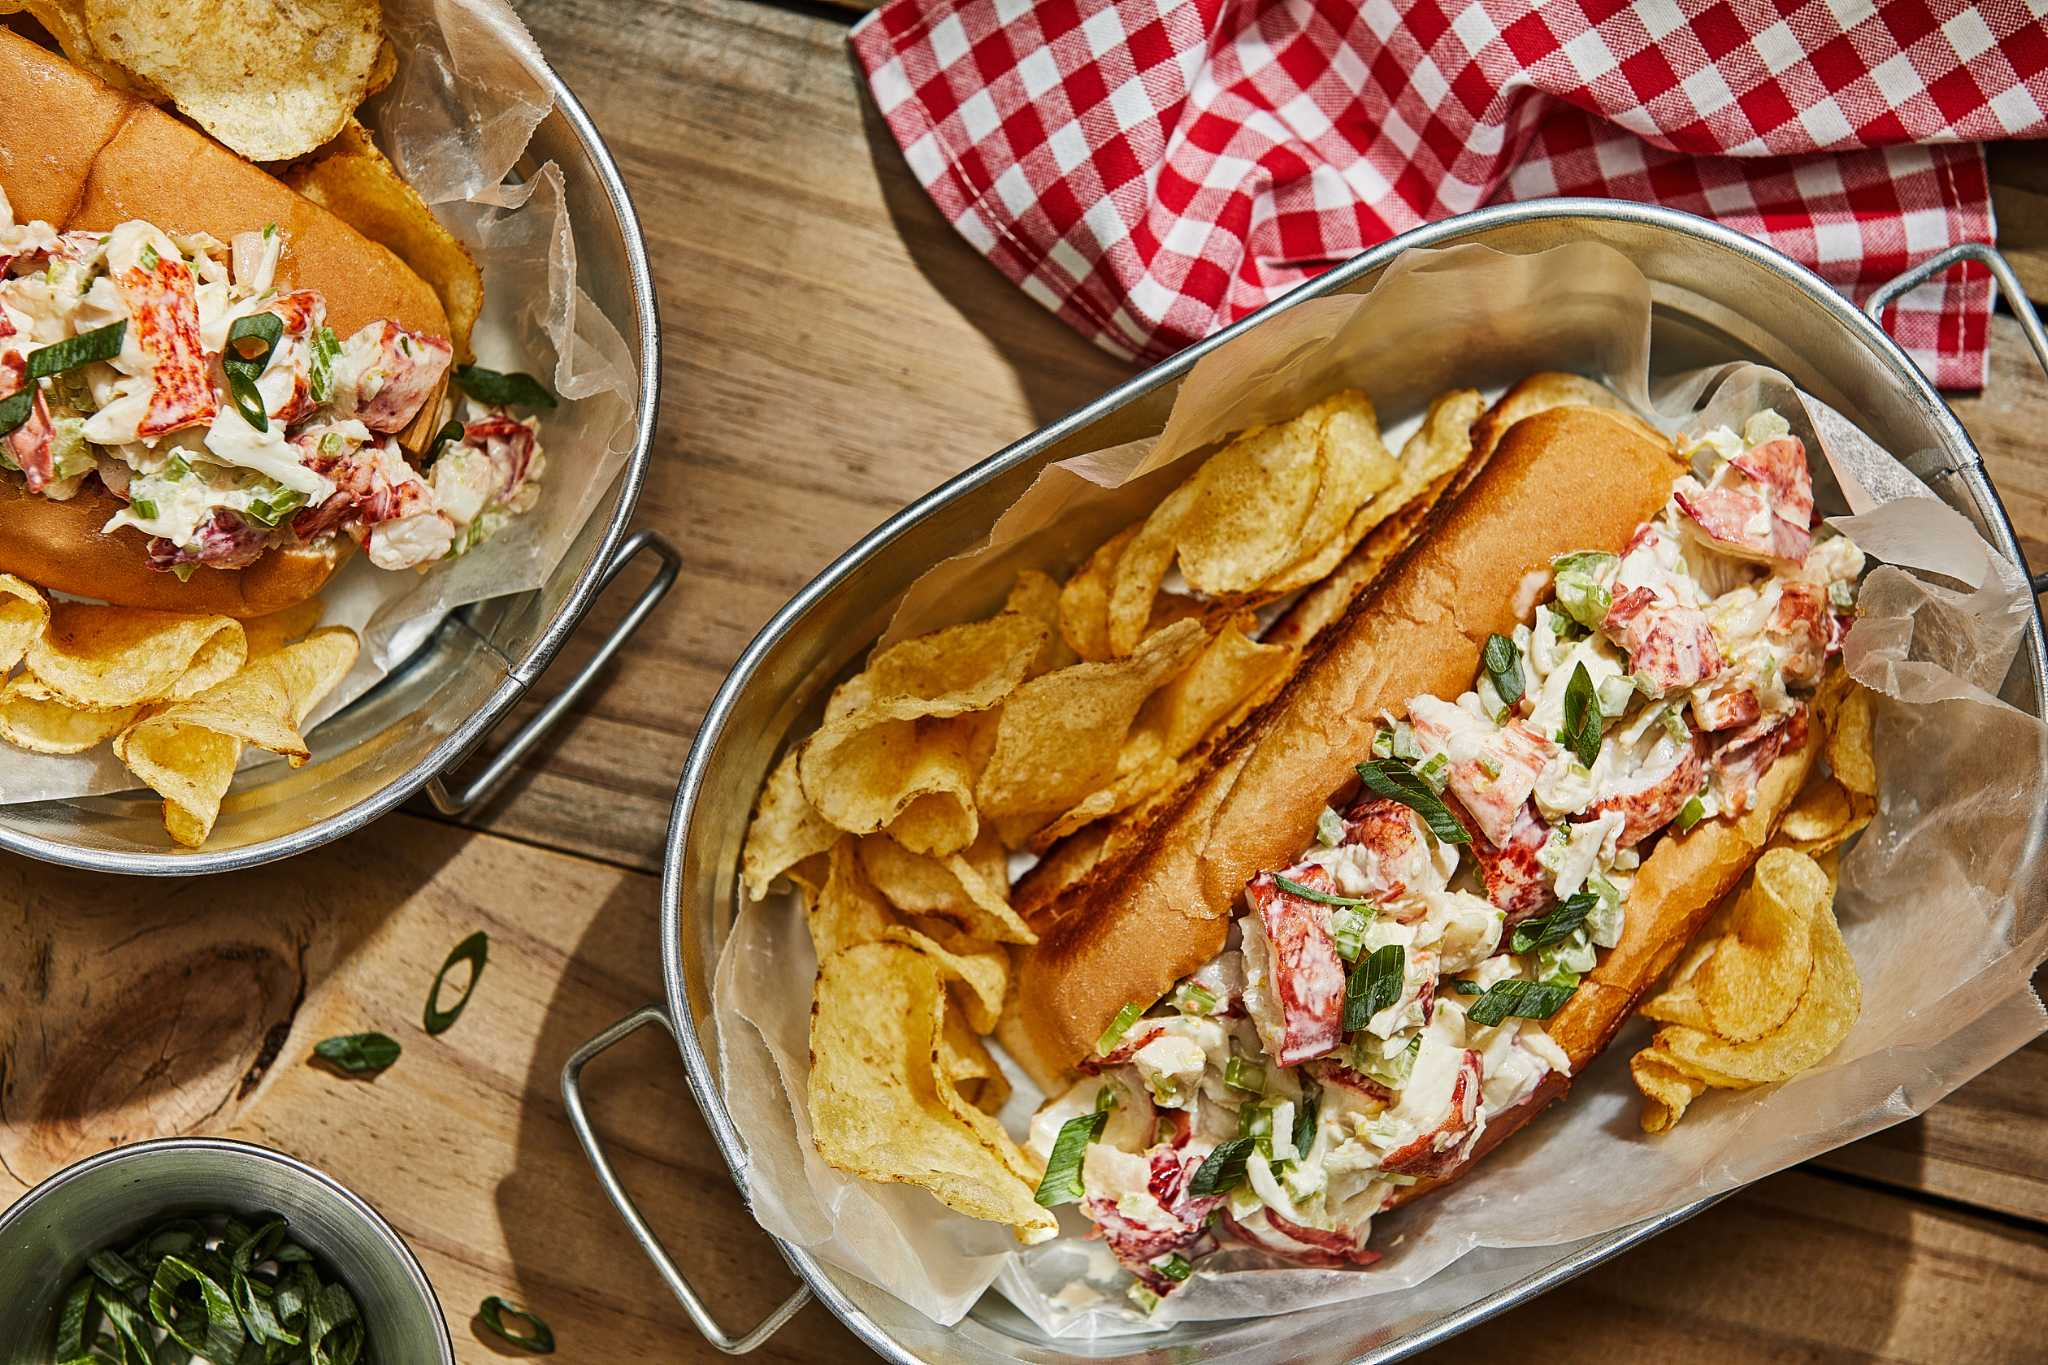 These Maine-style lobster rolls deliver a taste of New England summer - in your kitchen